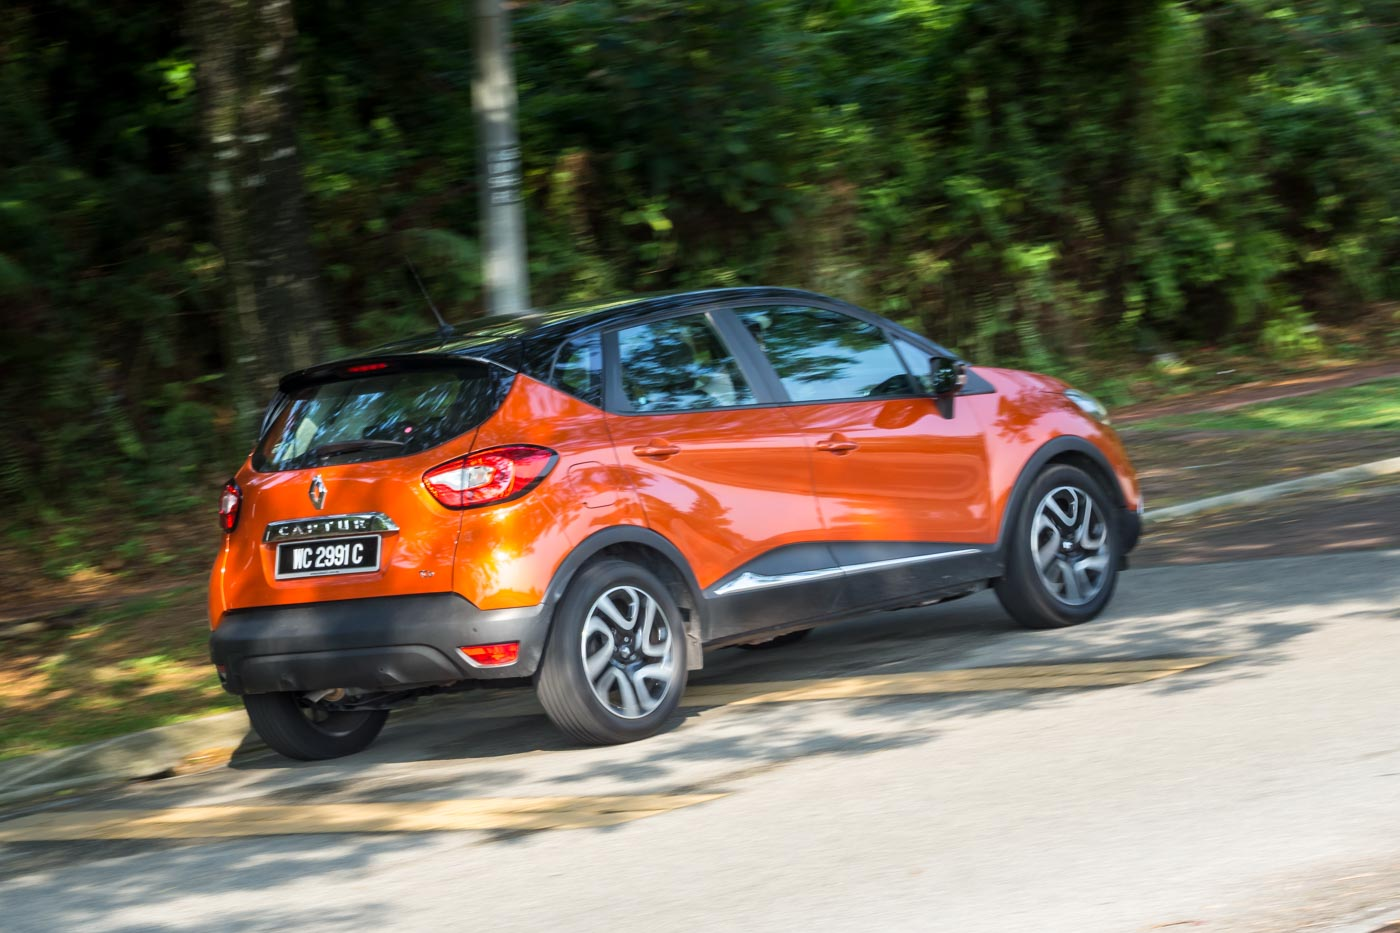 2016 Renault Captur 1.2L Review - AutoBuzz.my